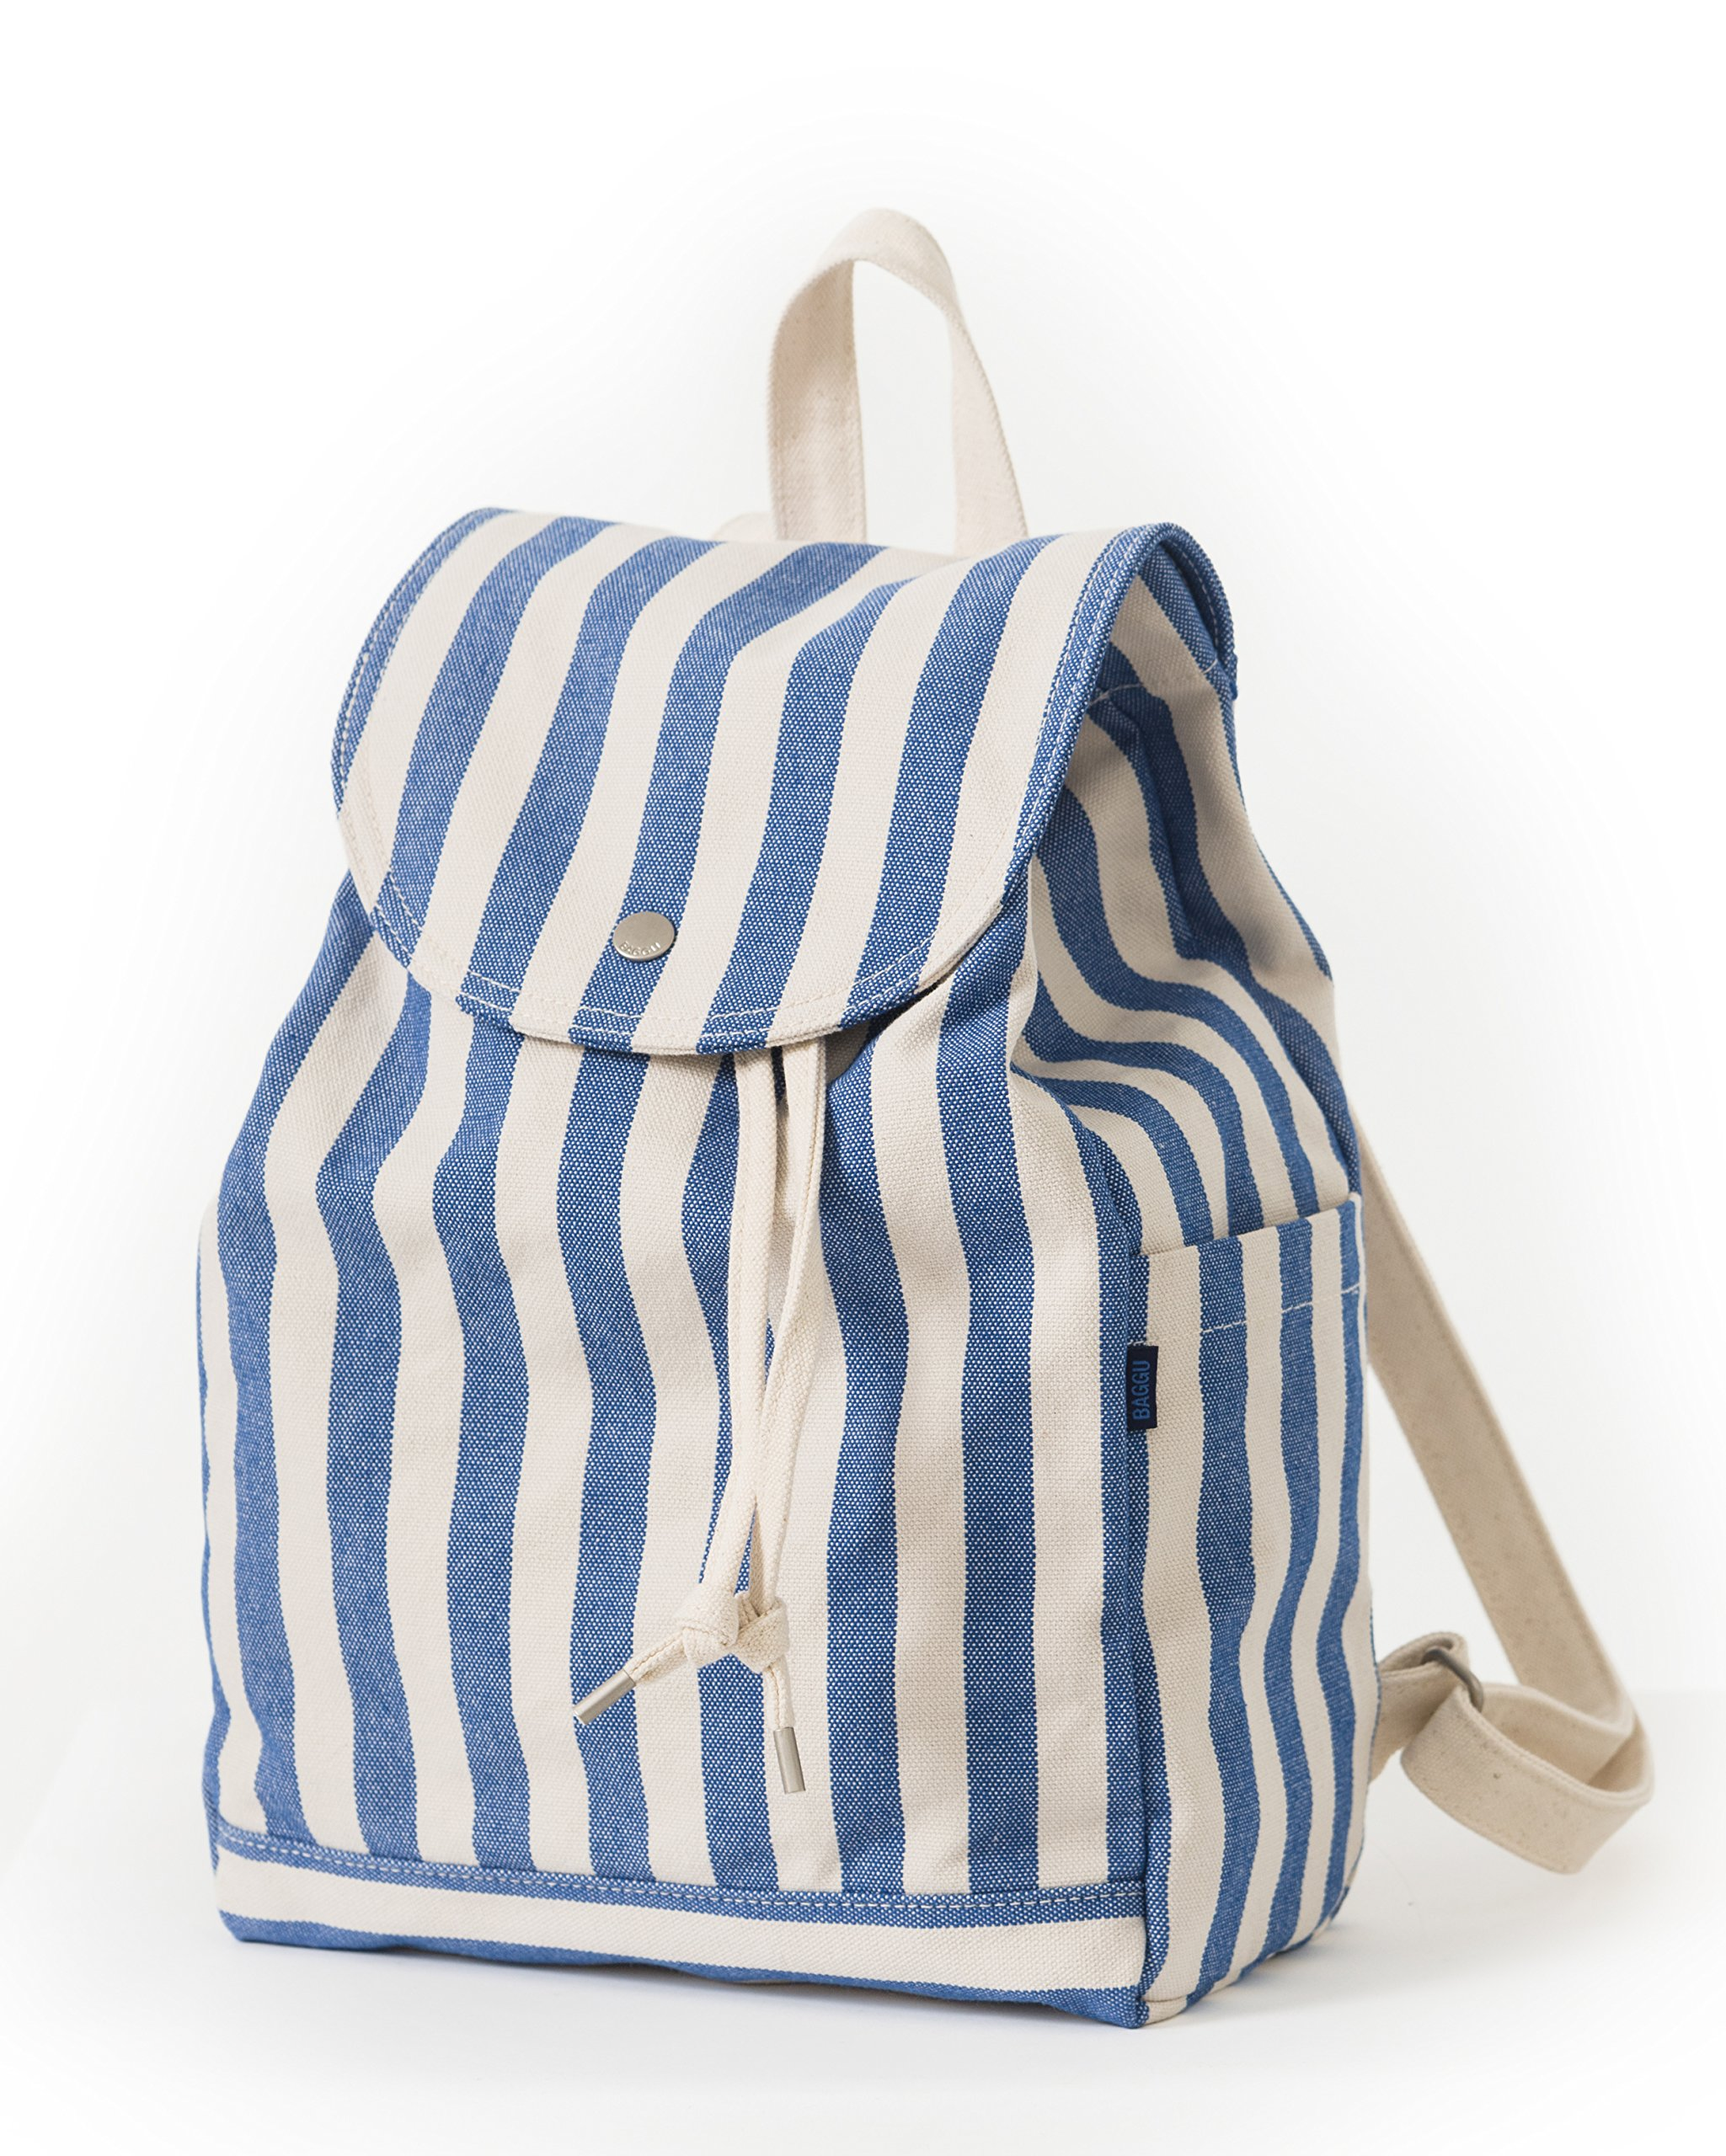 BAGGU Canvas Backpack, Durable and Stylish Simple Canvas Satchel for Daily Essentials, Summer Stripe